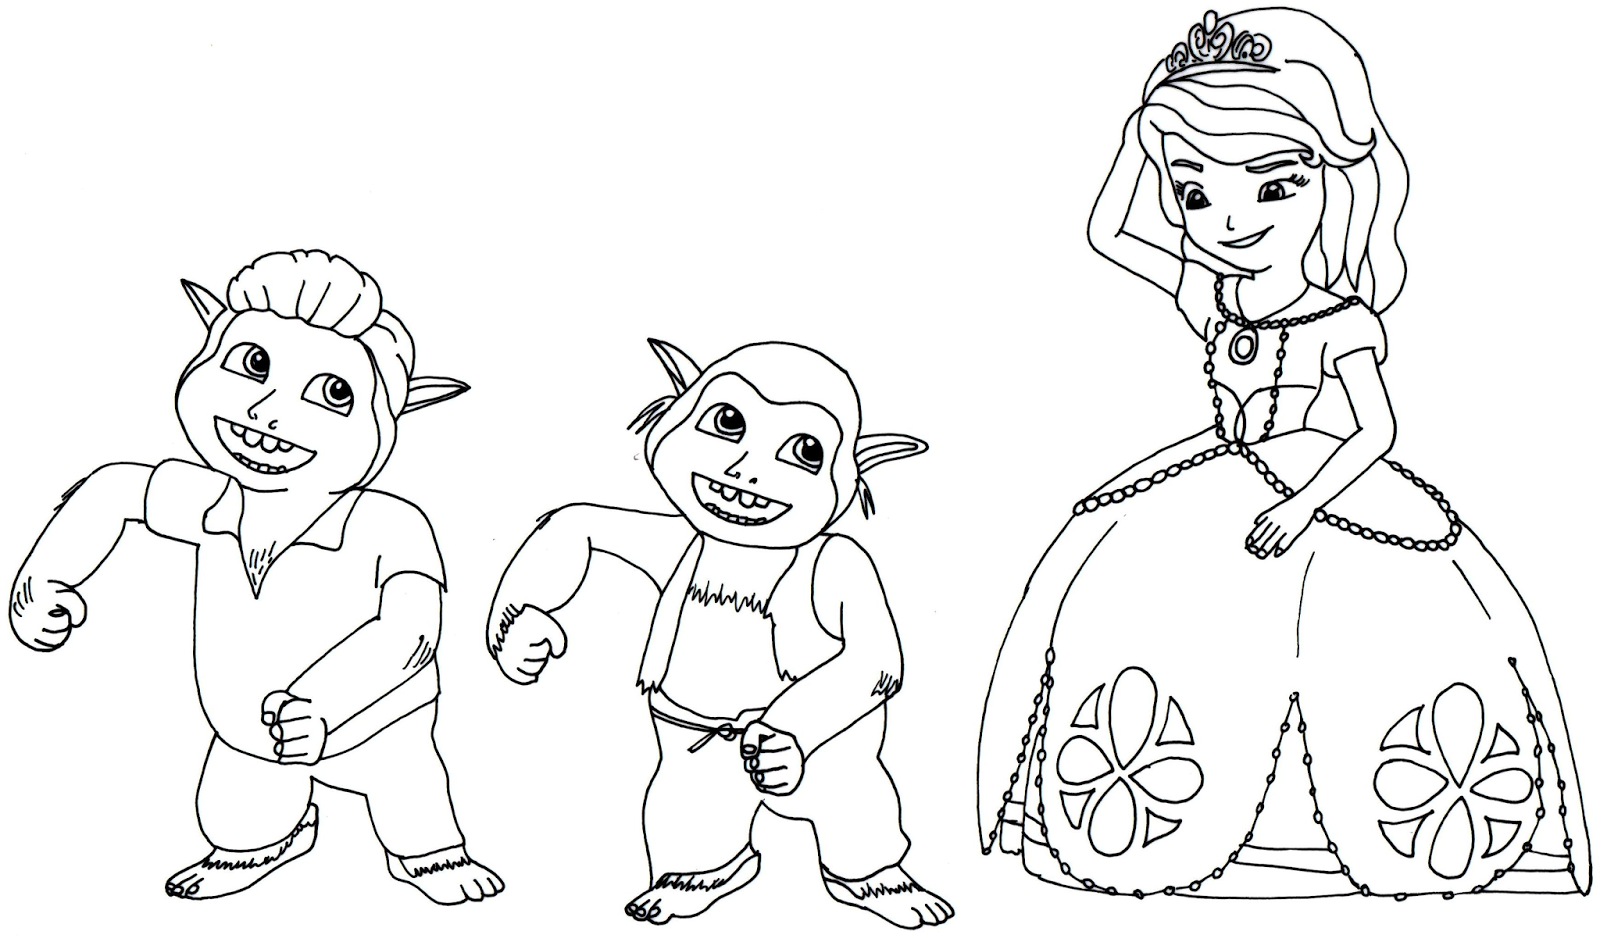 Sofia The First Coloring Pages: Sofia the First Coloring Page with ...